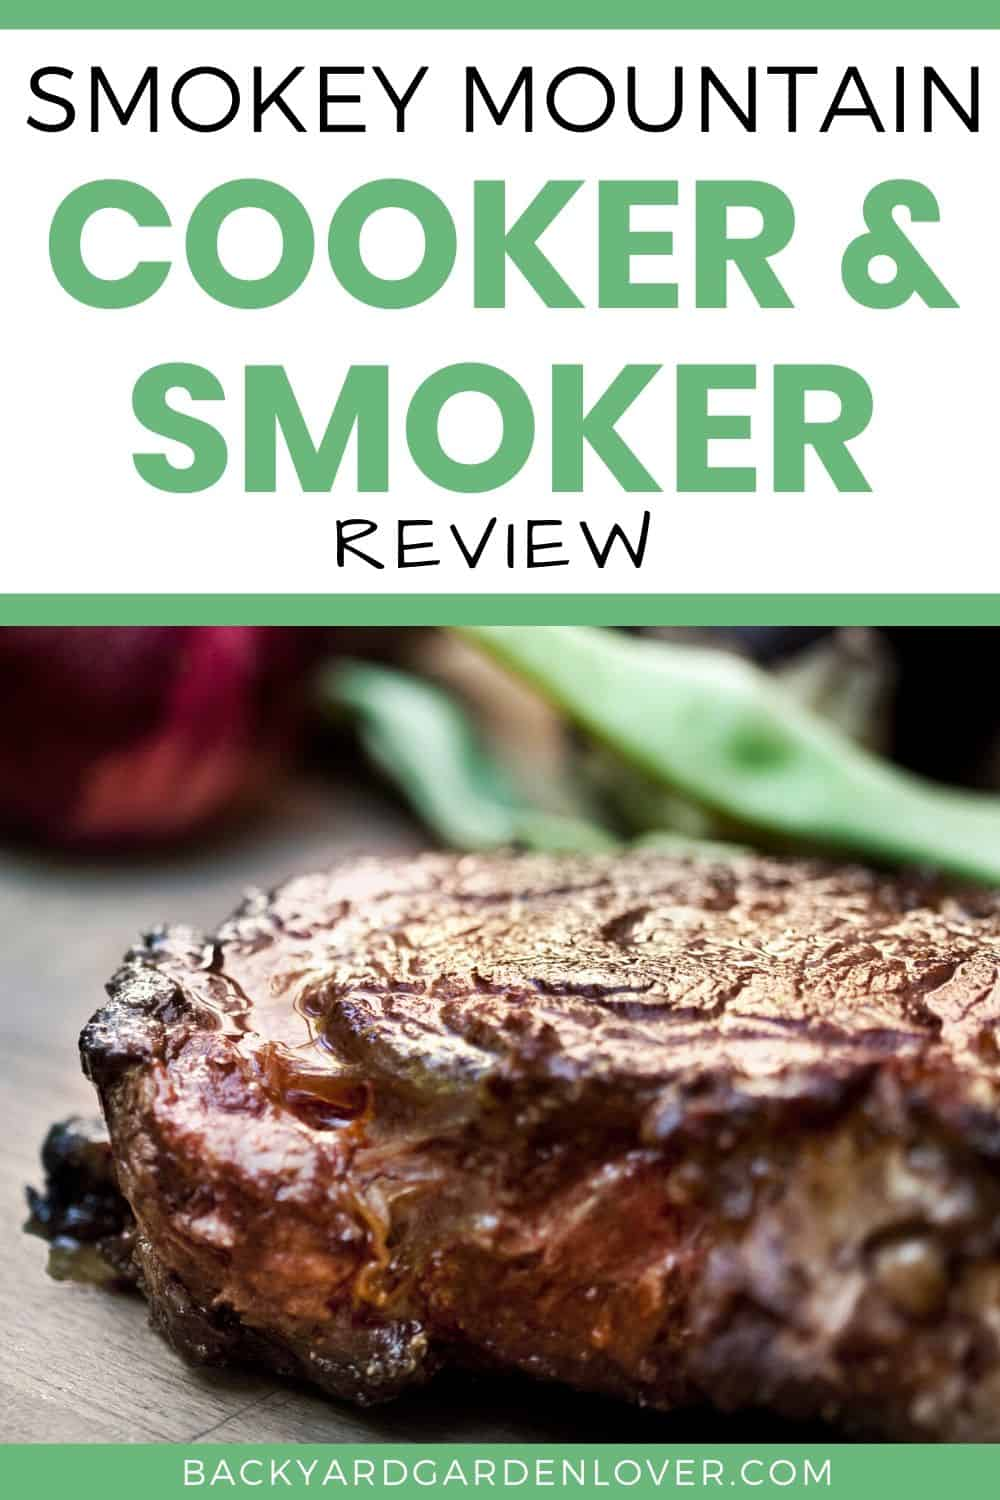 Smokey Mountain cooker and smoker review - Pinterest image